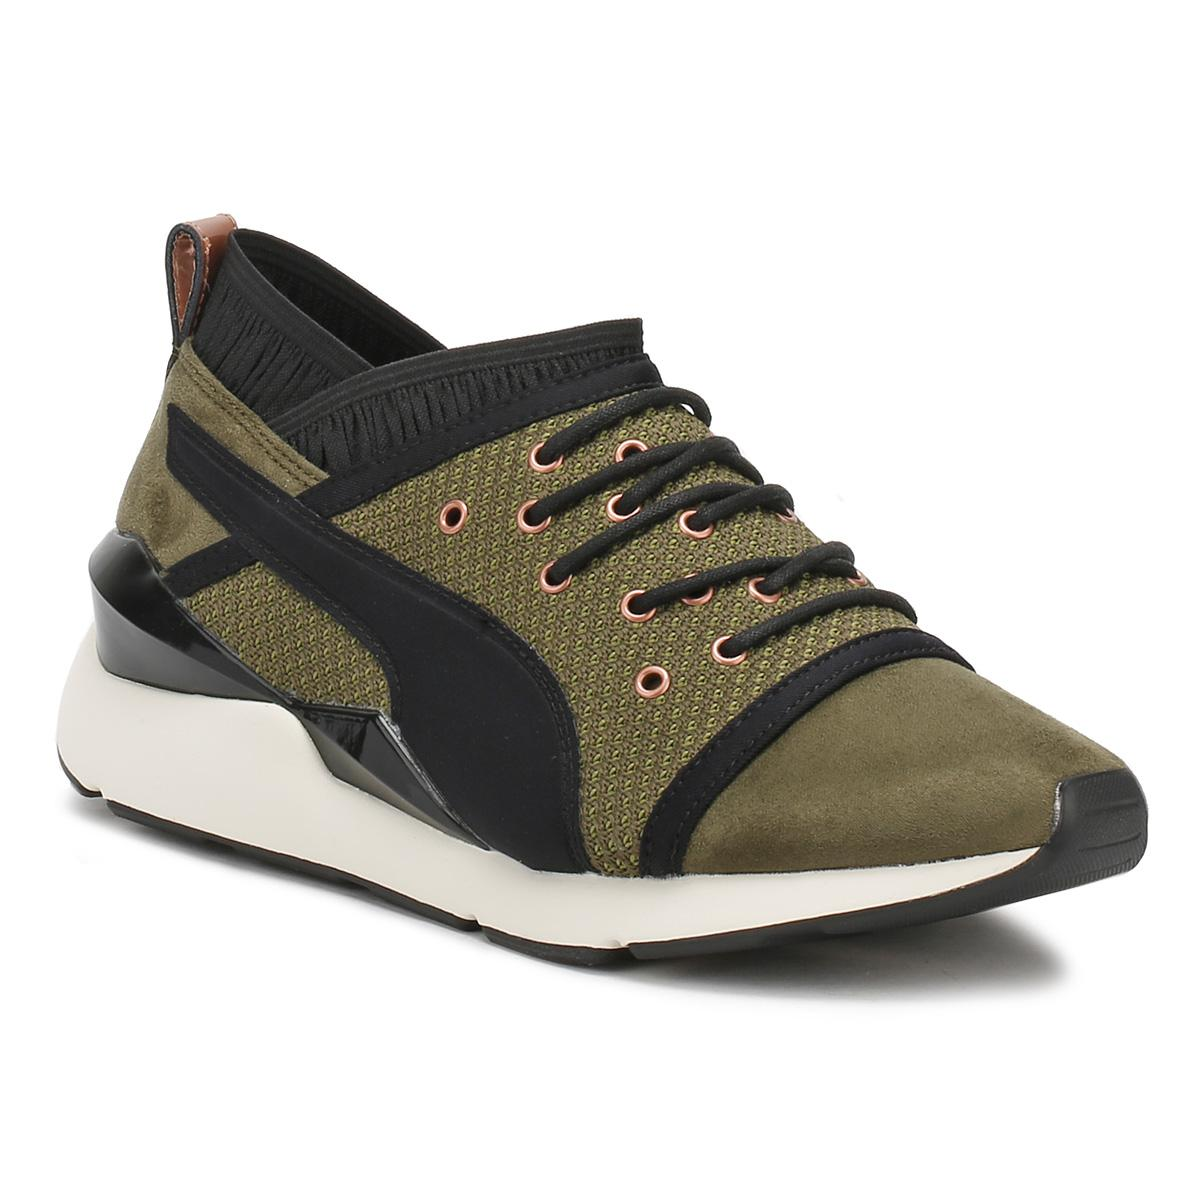 PUMA Womens Olive Green Night Pearl Trainers Women s In Green in ... fc7264e49